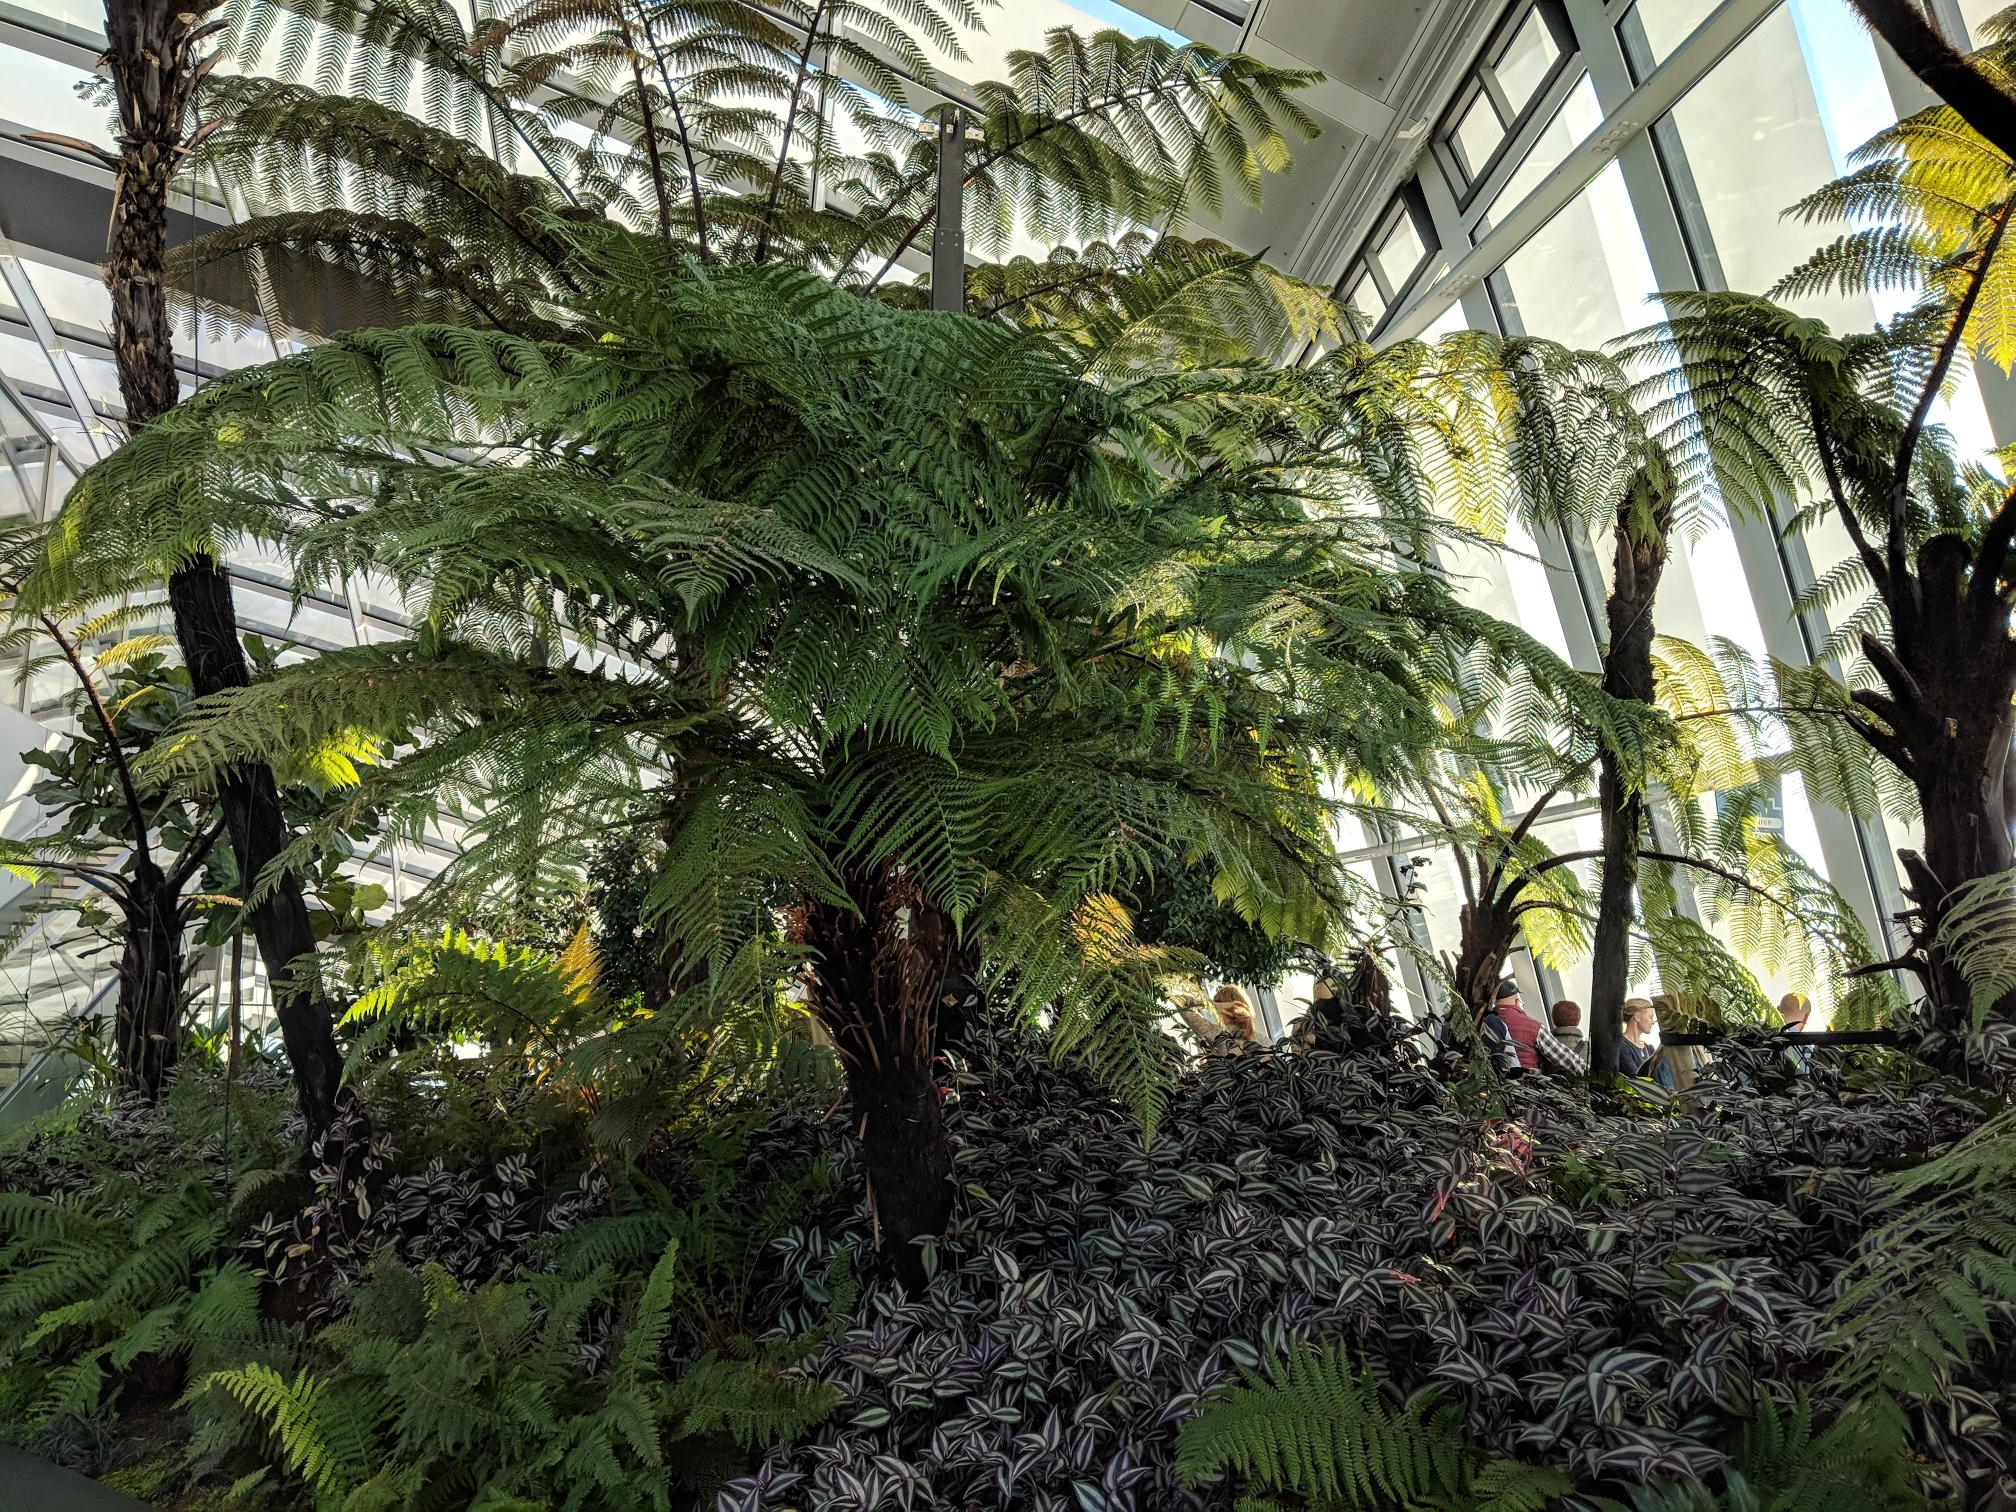 Fern planting at the SkyGarden on 20 Fenchurch Street.